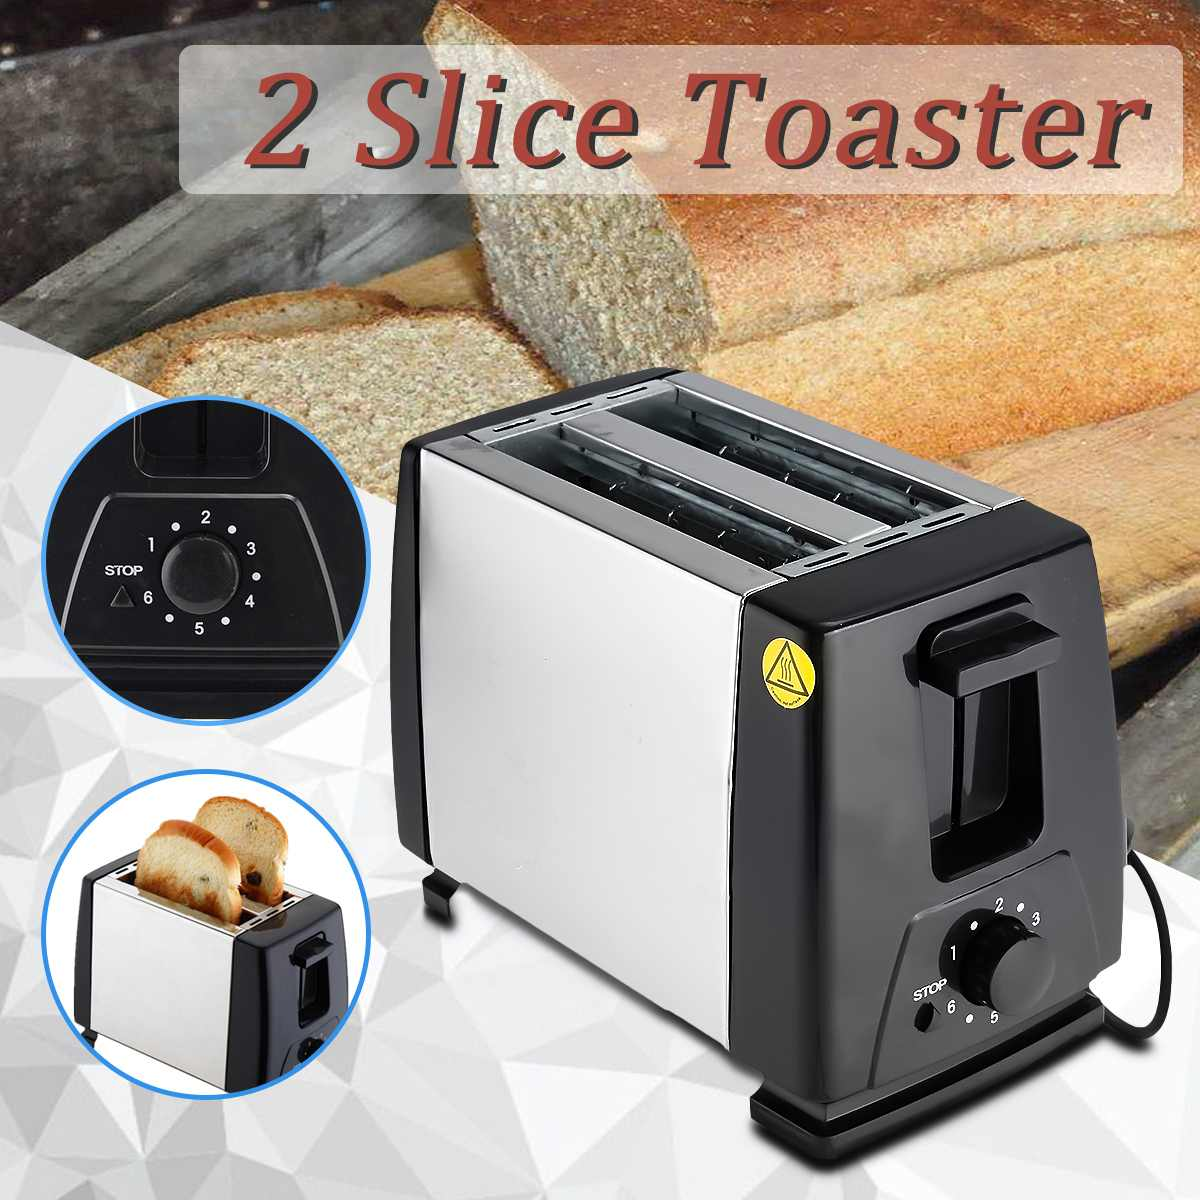 2 Slices Stainless Steel  6 Modes Automatic Electric Toaster Bread Baking Spit Driver Breakfast Sandwich Maker Machine2 Slices Stainless Steel  6 Modes Automatic Electric Toaster Bread Baking Spit Driver Breakfast Sandwich Maker Machine